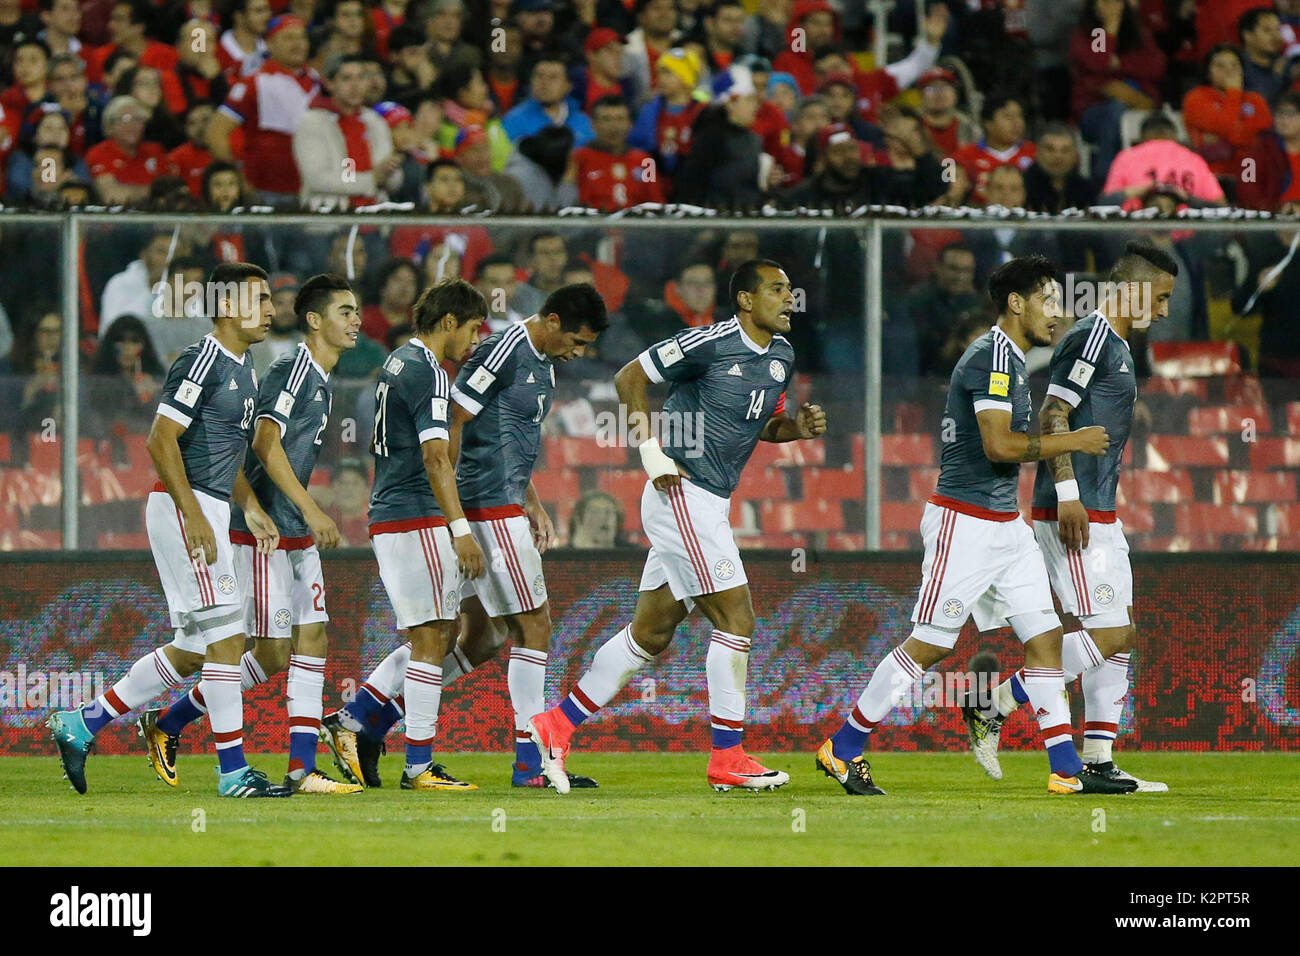 Amazing Chile World Cup 2018 - paraguays-players-jubilate-a-goal-against-chile-during-the-russia-K2PT5R  You Should Have_139820 .jpg